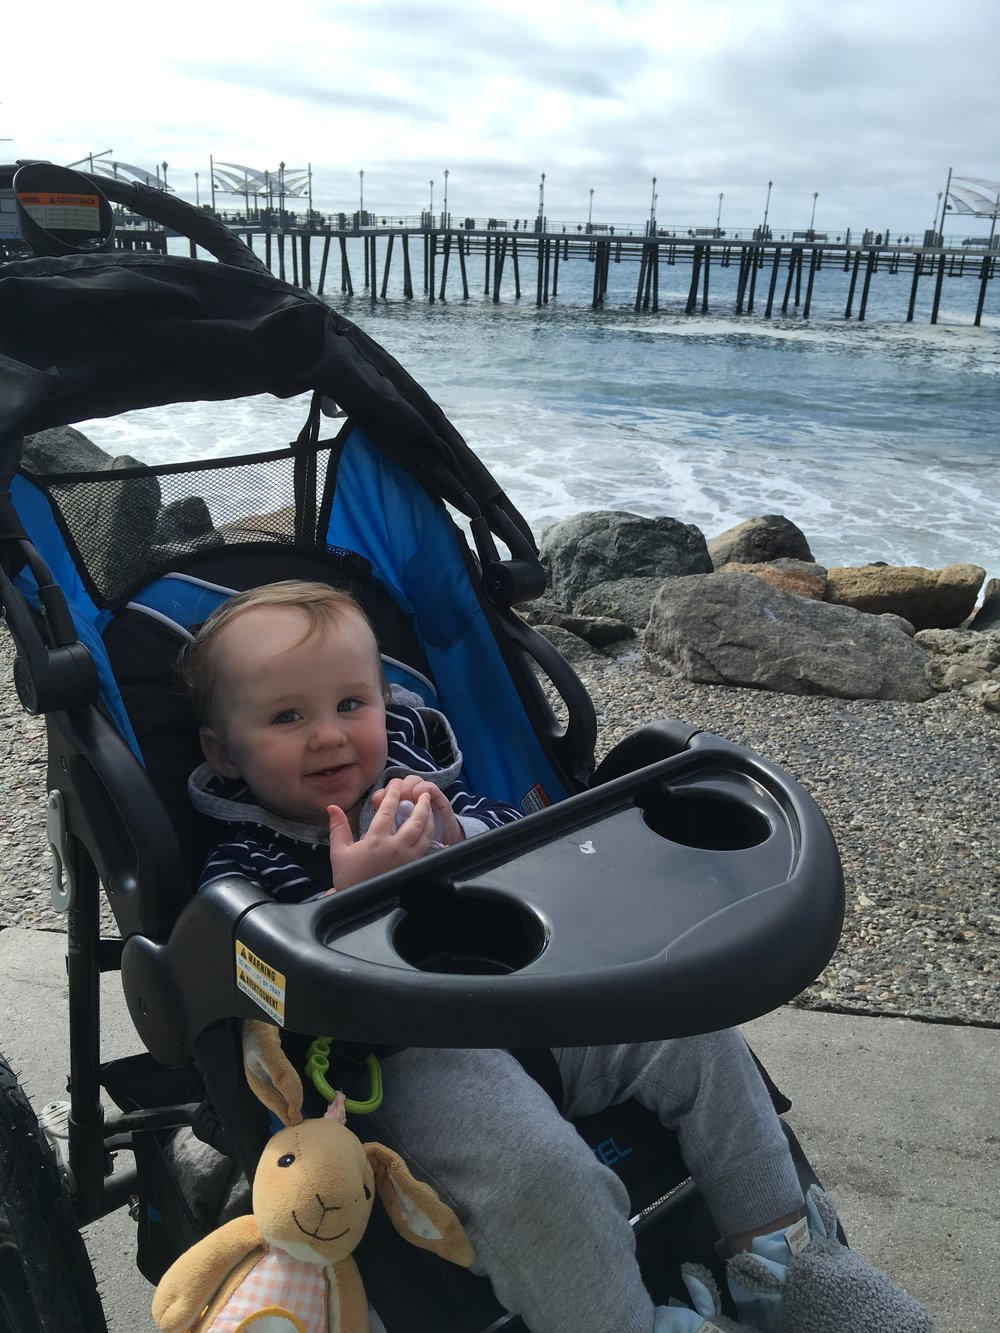 Will and I hit the running path for one of my easy runs this week. He loved waving at everyone and even felt some of the mist from the big waves - he thought that was pretty funny.